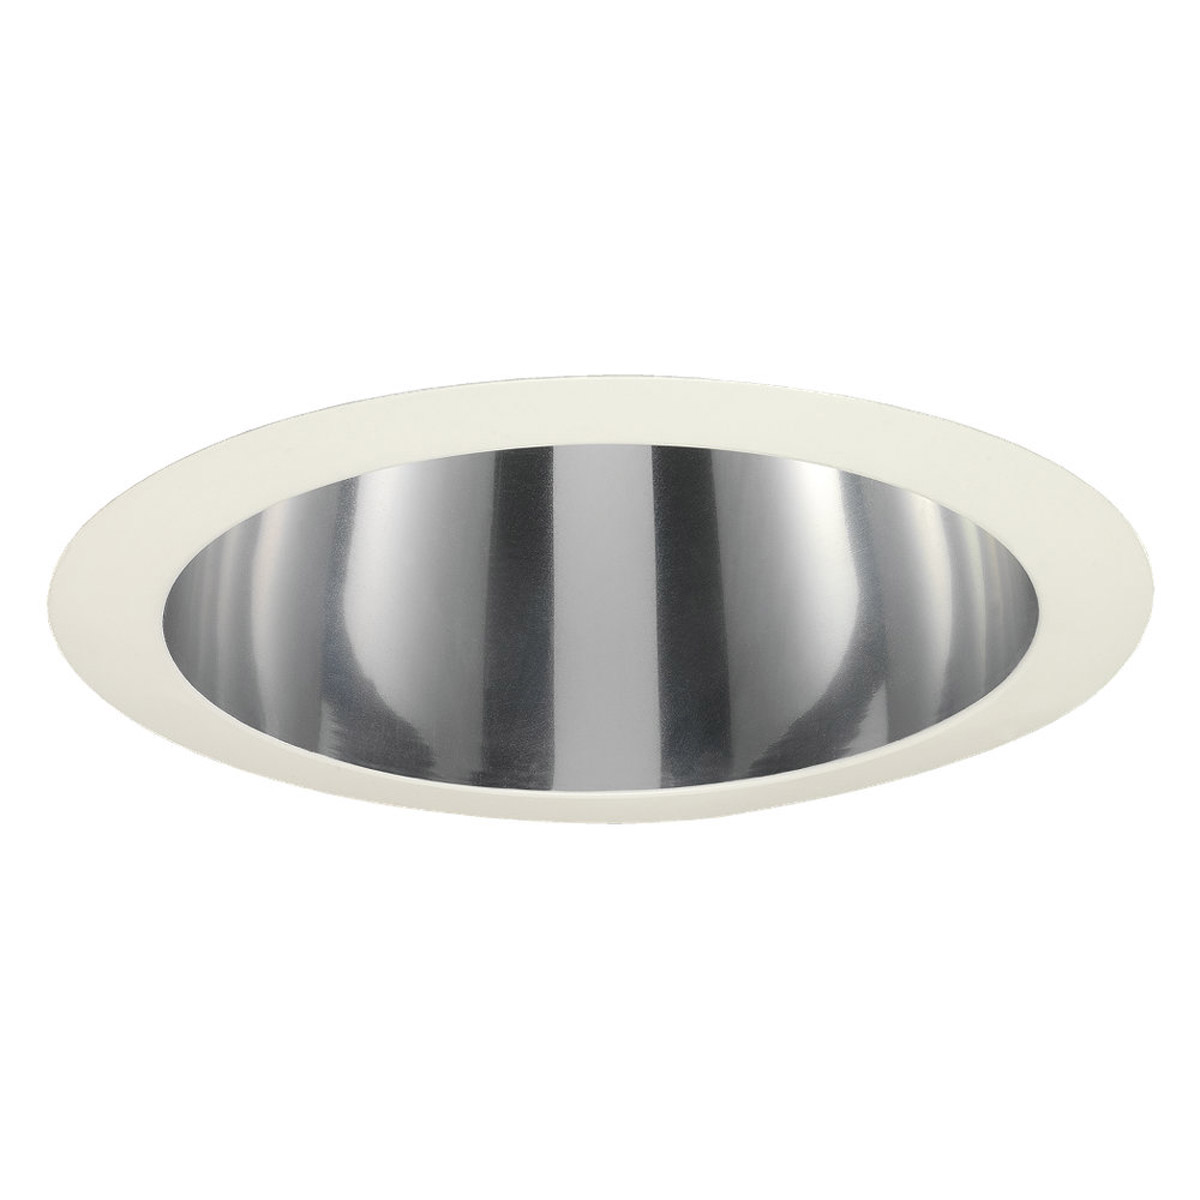 Sea Gull Lighting Signature Recessed Trim Only in Polished Aluminum 11132AT-22 photo